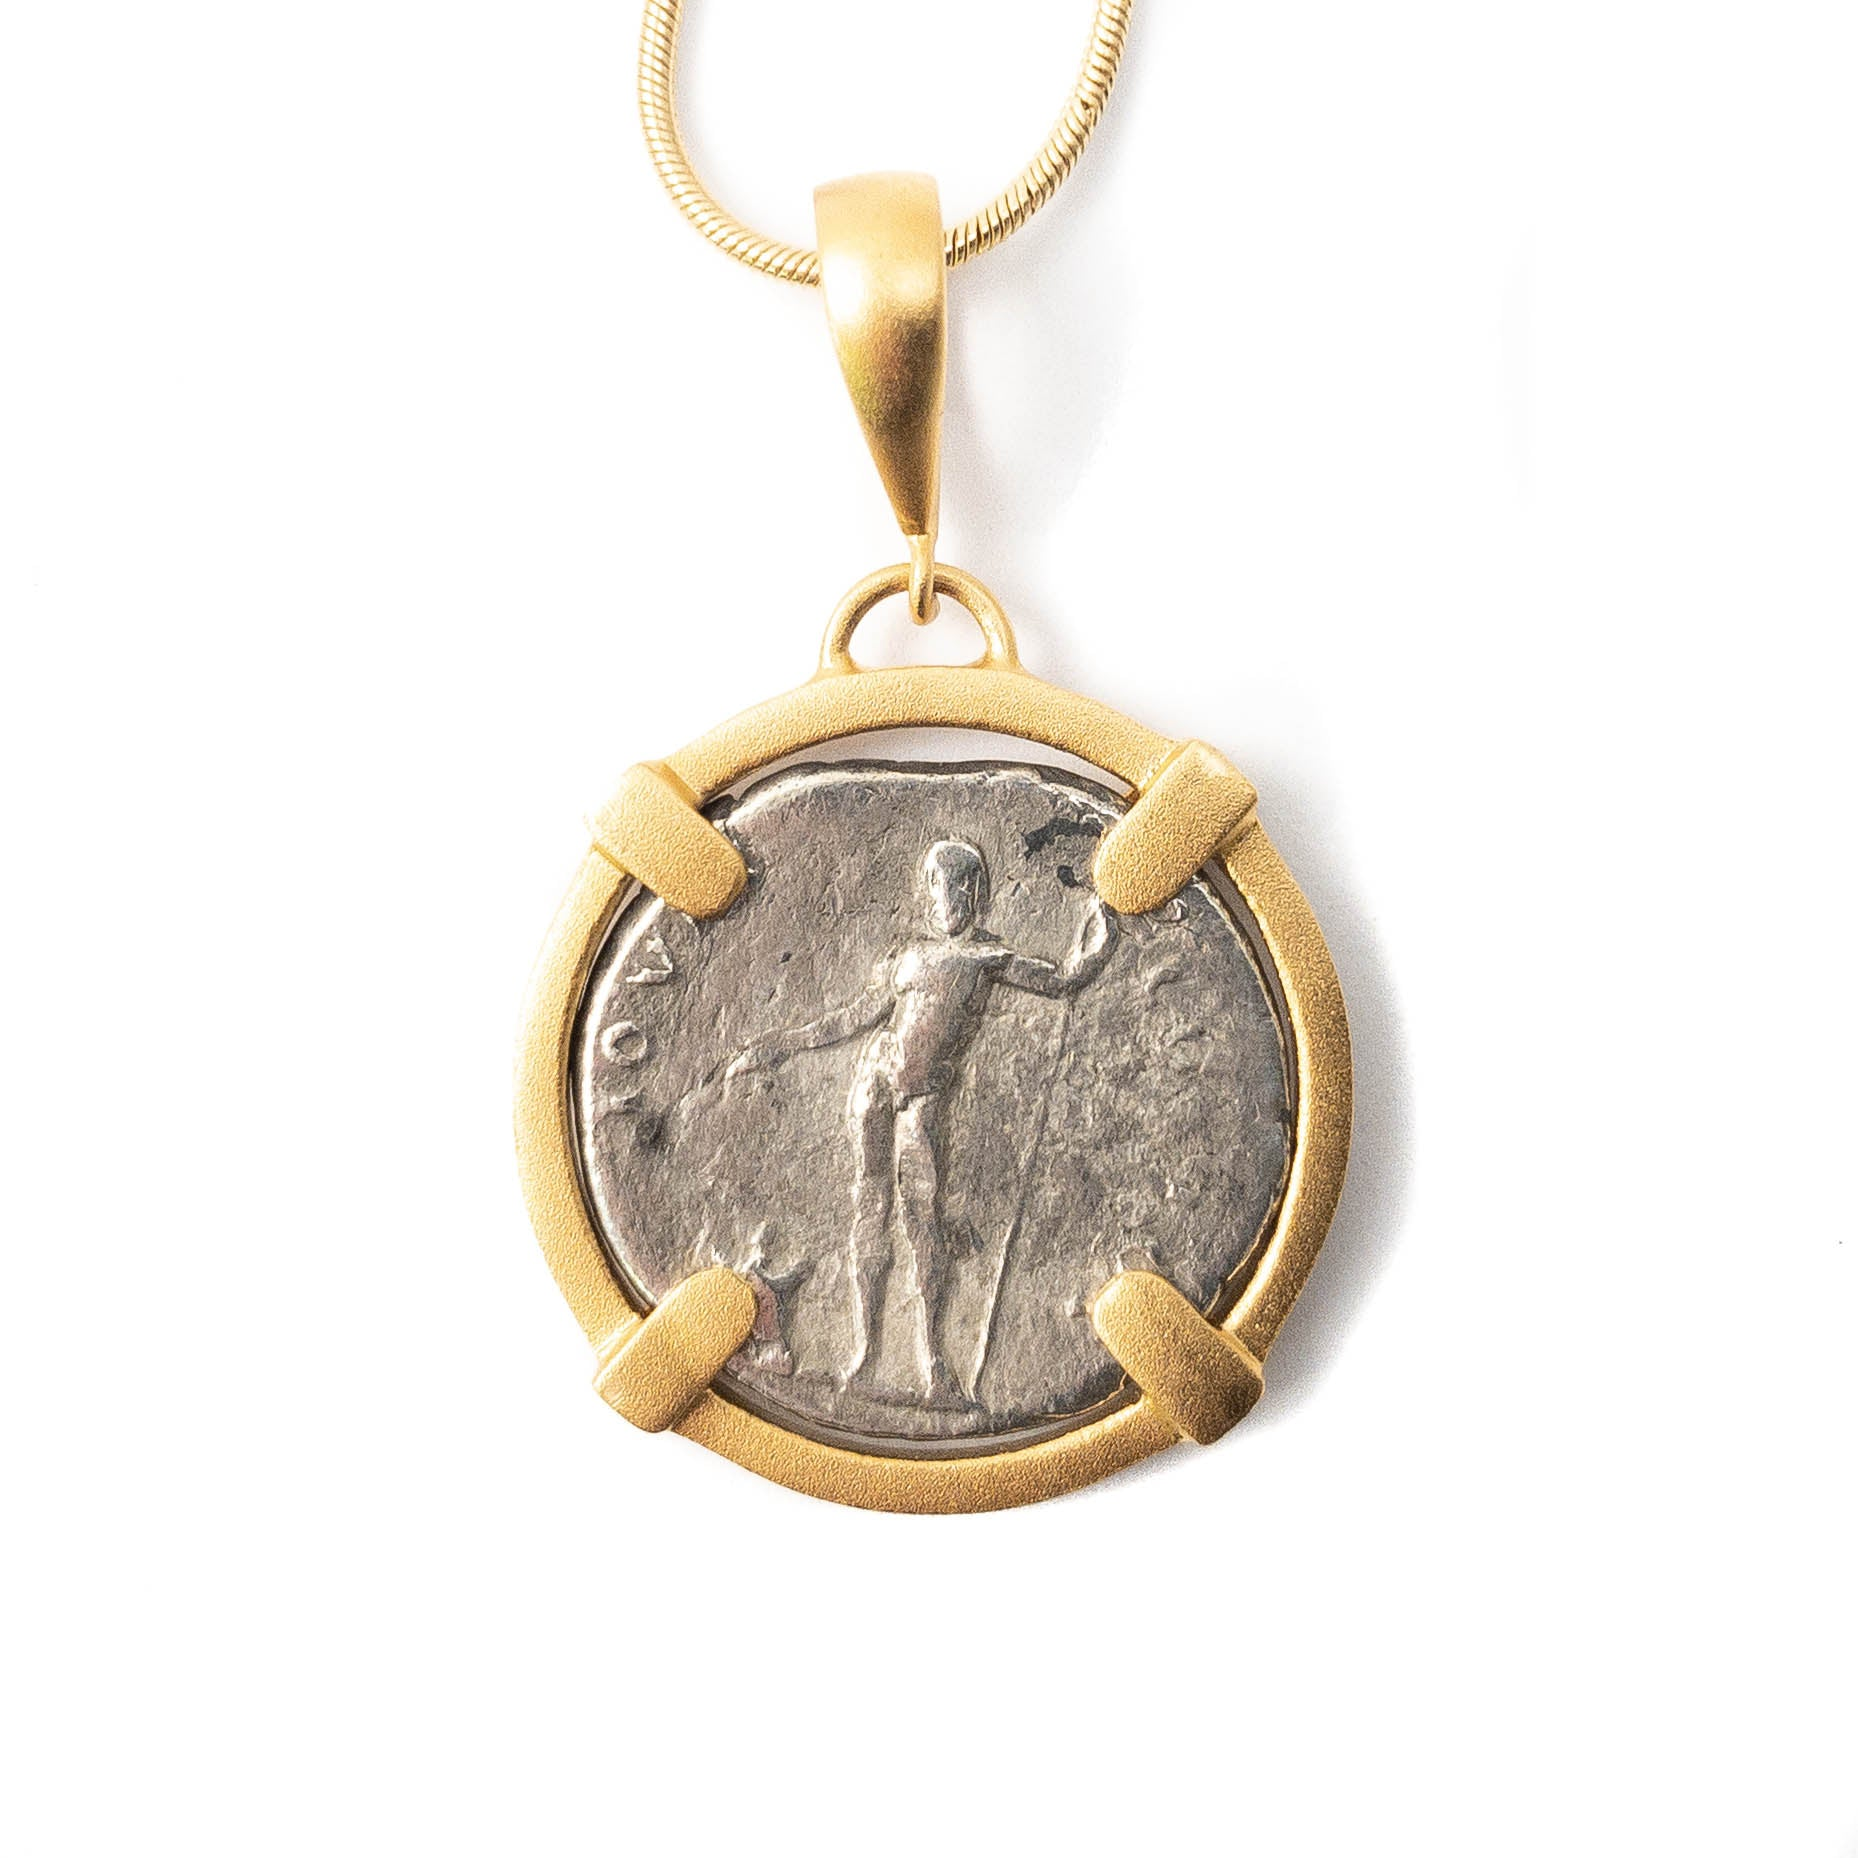 Genuine Ancient Roman Coin Necklace (VESPASIAN, 69-79 AD)